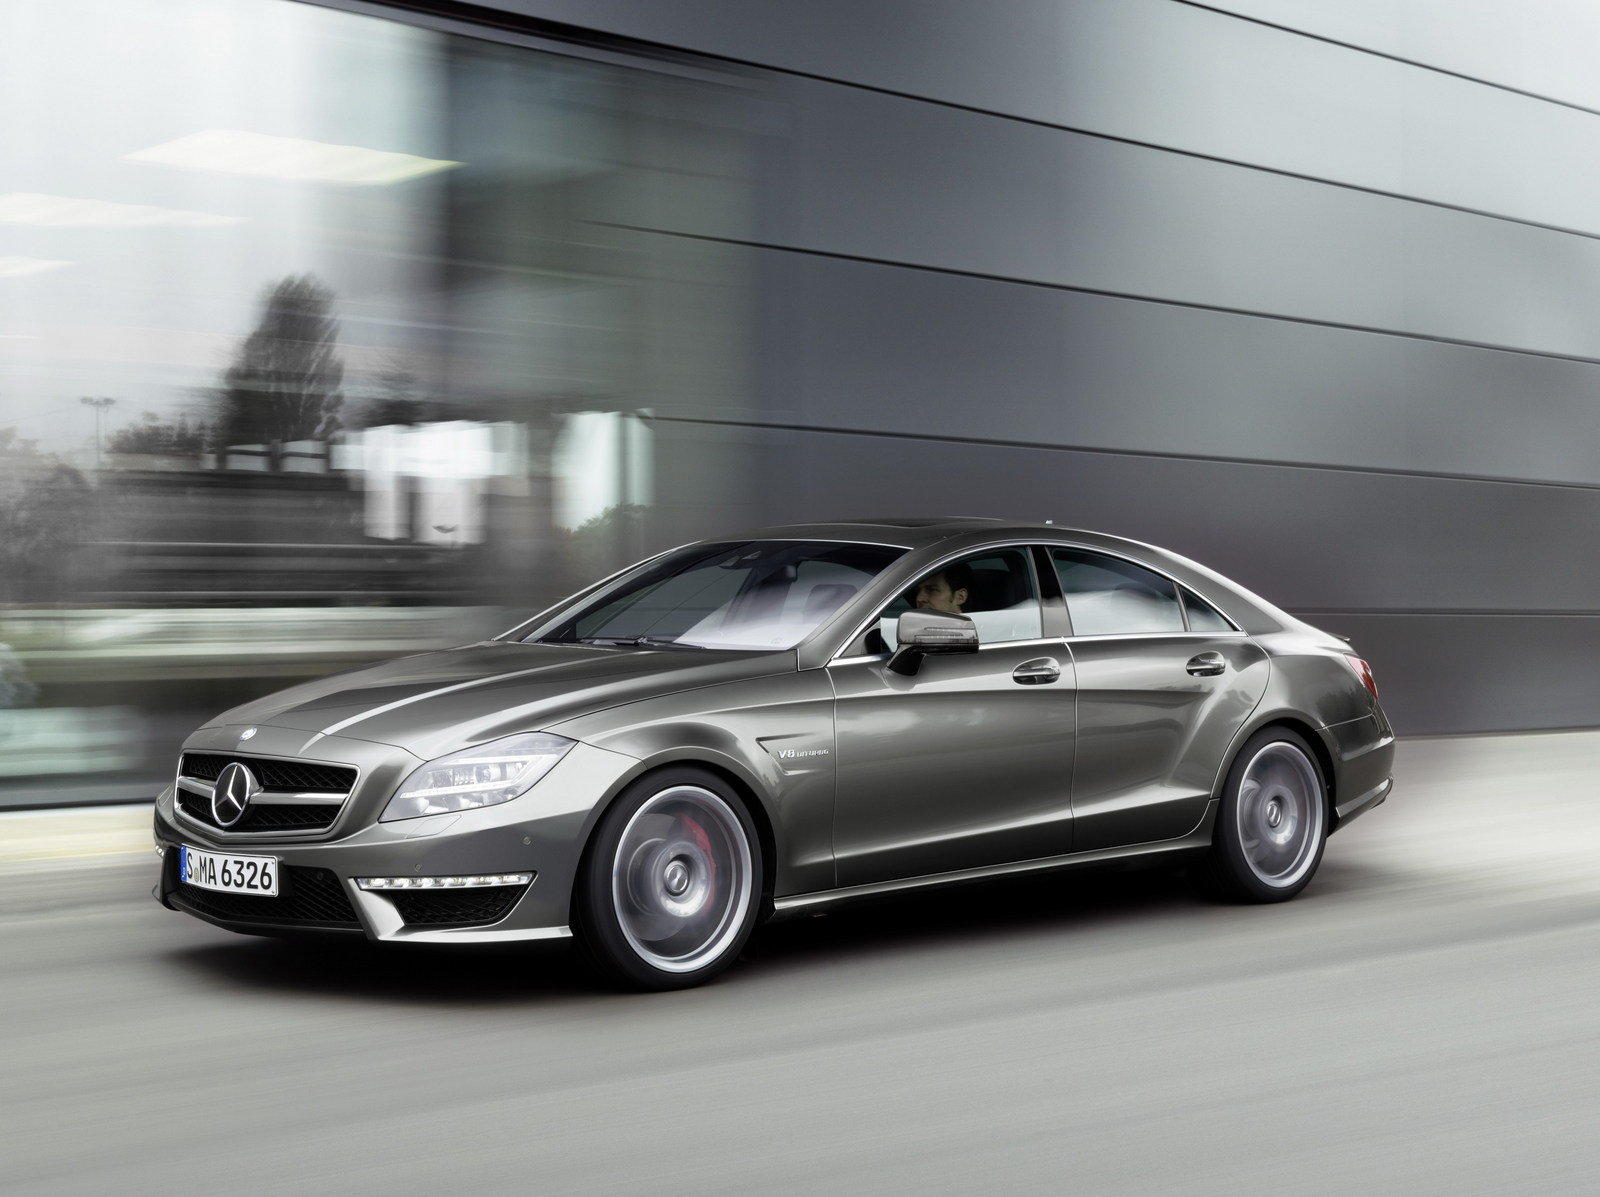 2014 mercedes cls 63 amg 4matic review top speed